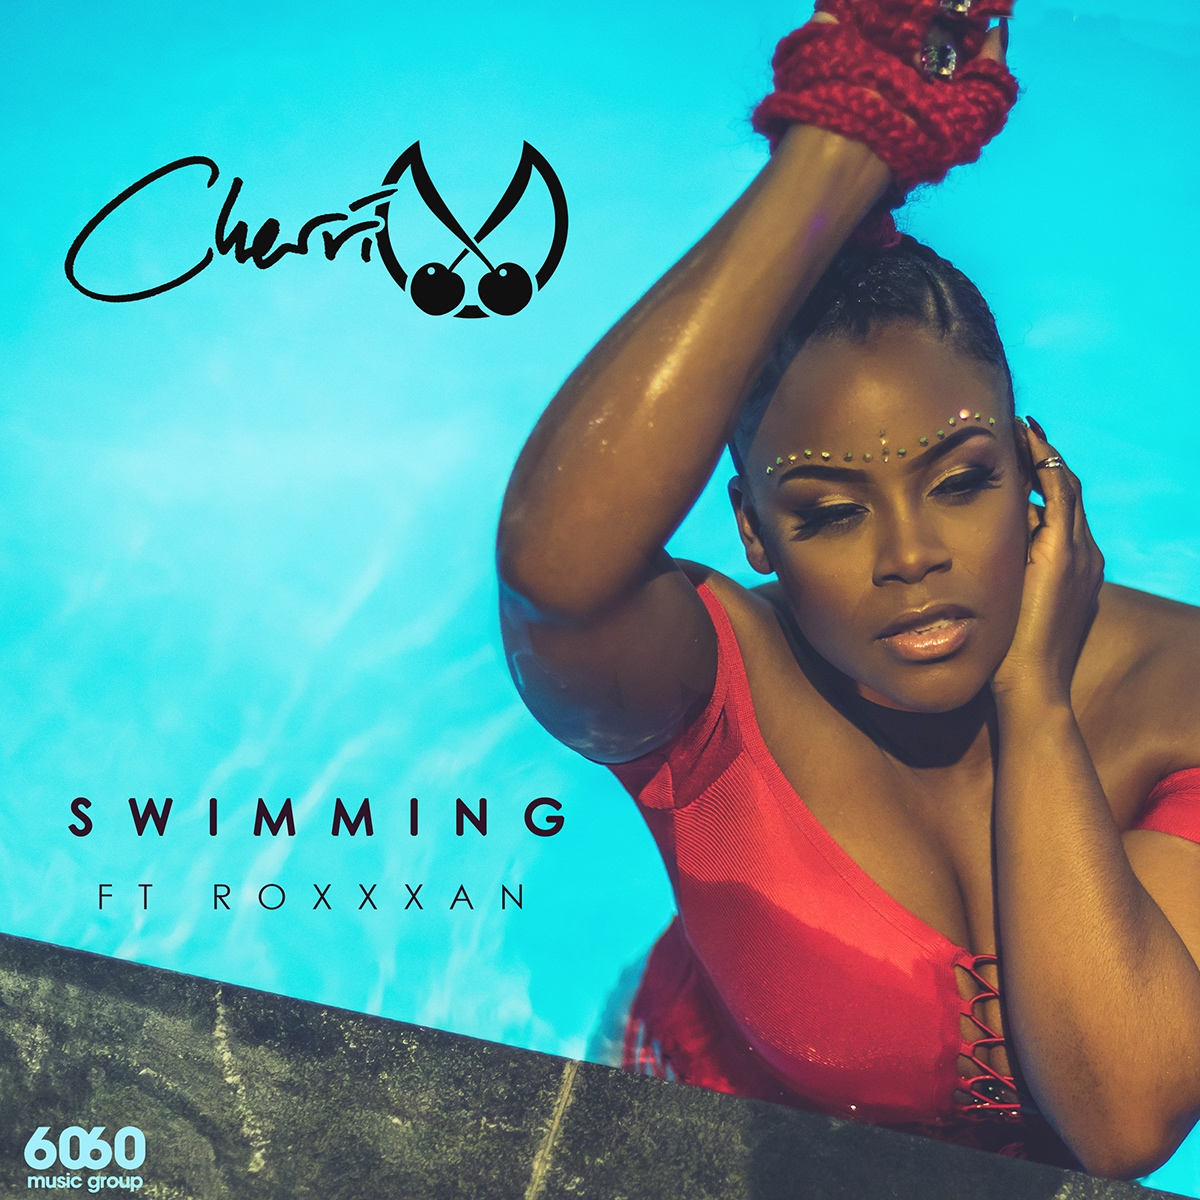 Cherri V Swimming